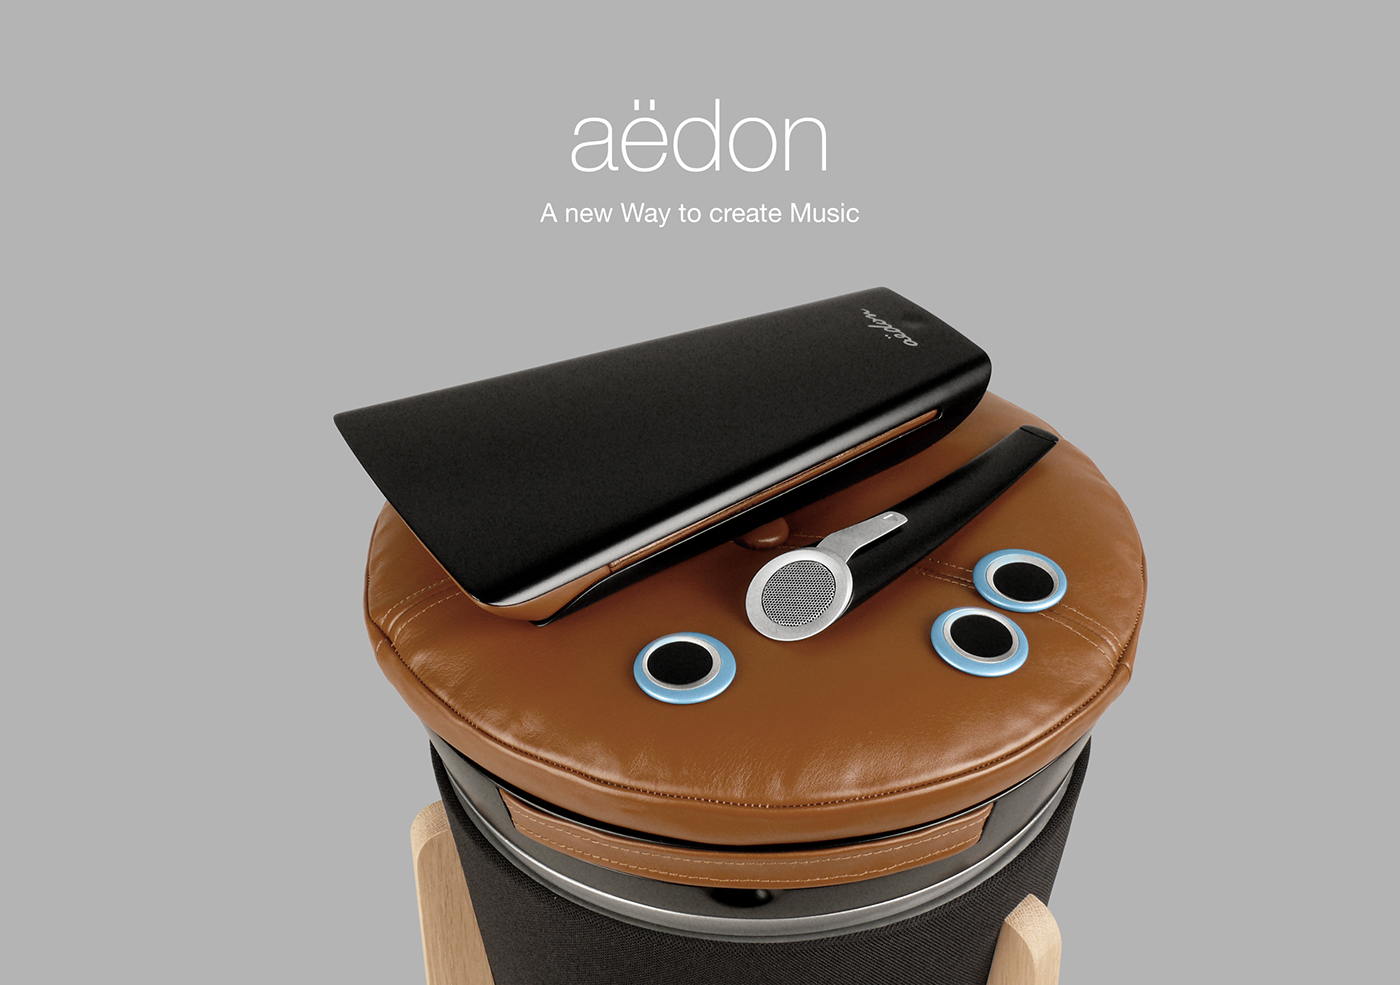 instrument electronic music Interface speaker Musical Instrument leather wood tangible user interface tangibles